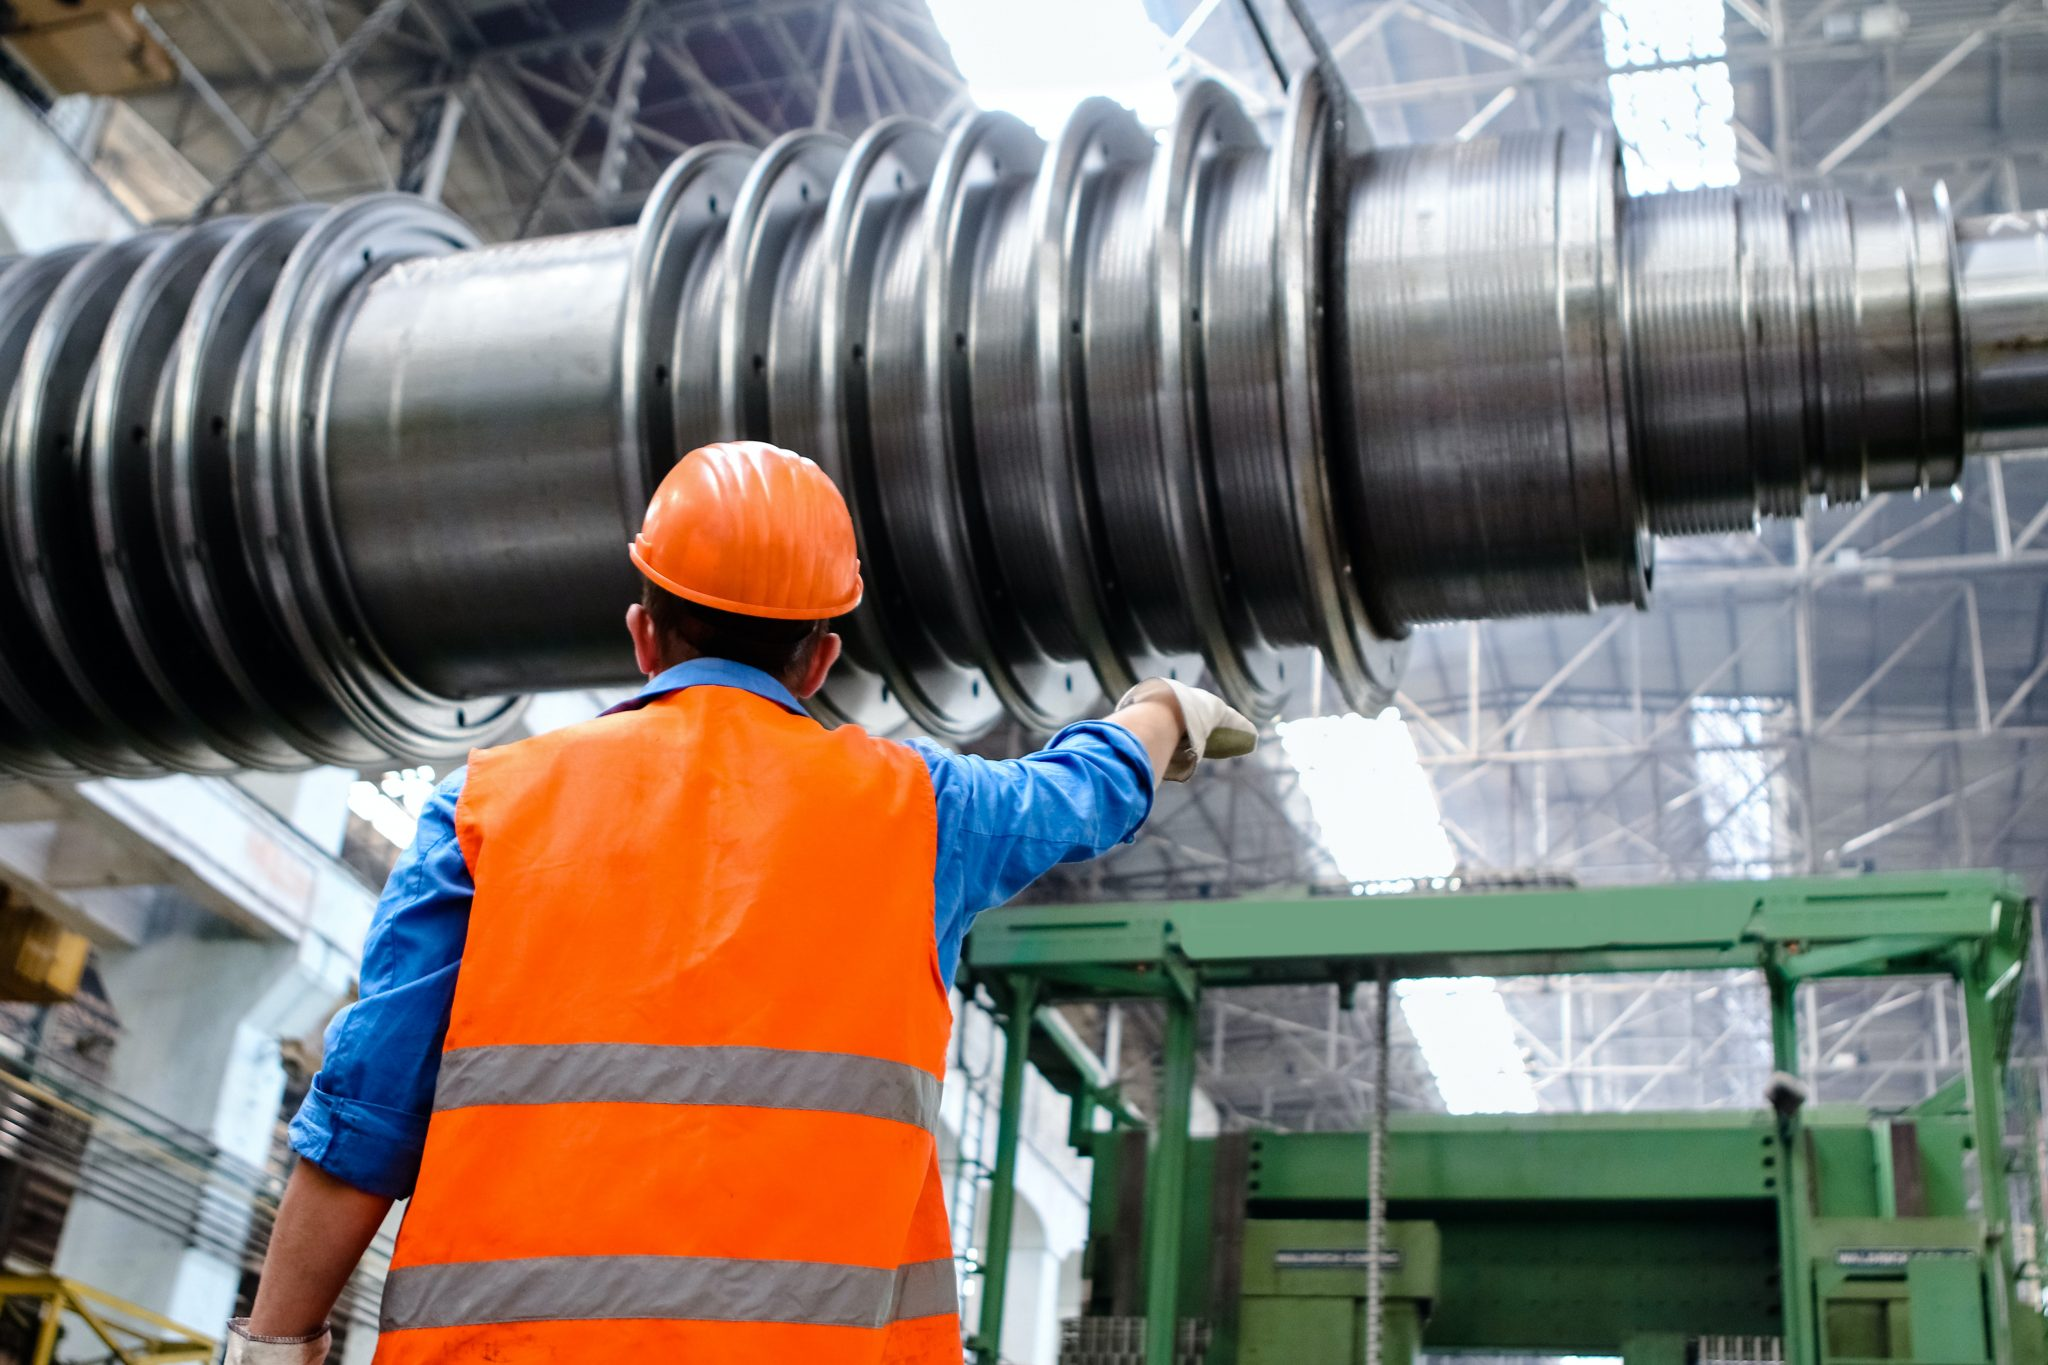 5 Tips to Extend the Life of Your Industrial Manipulator